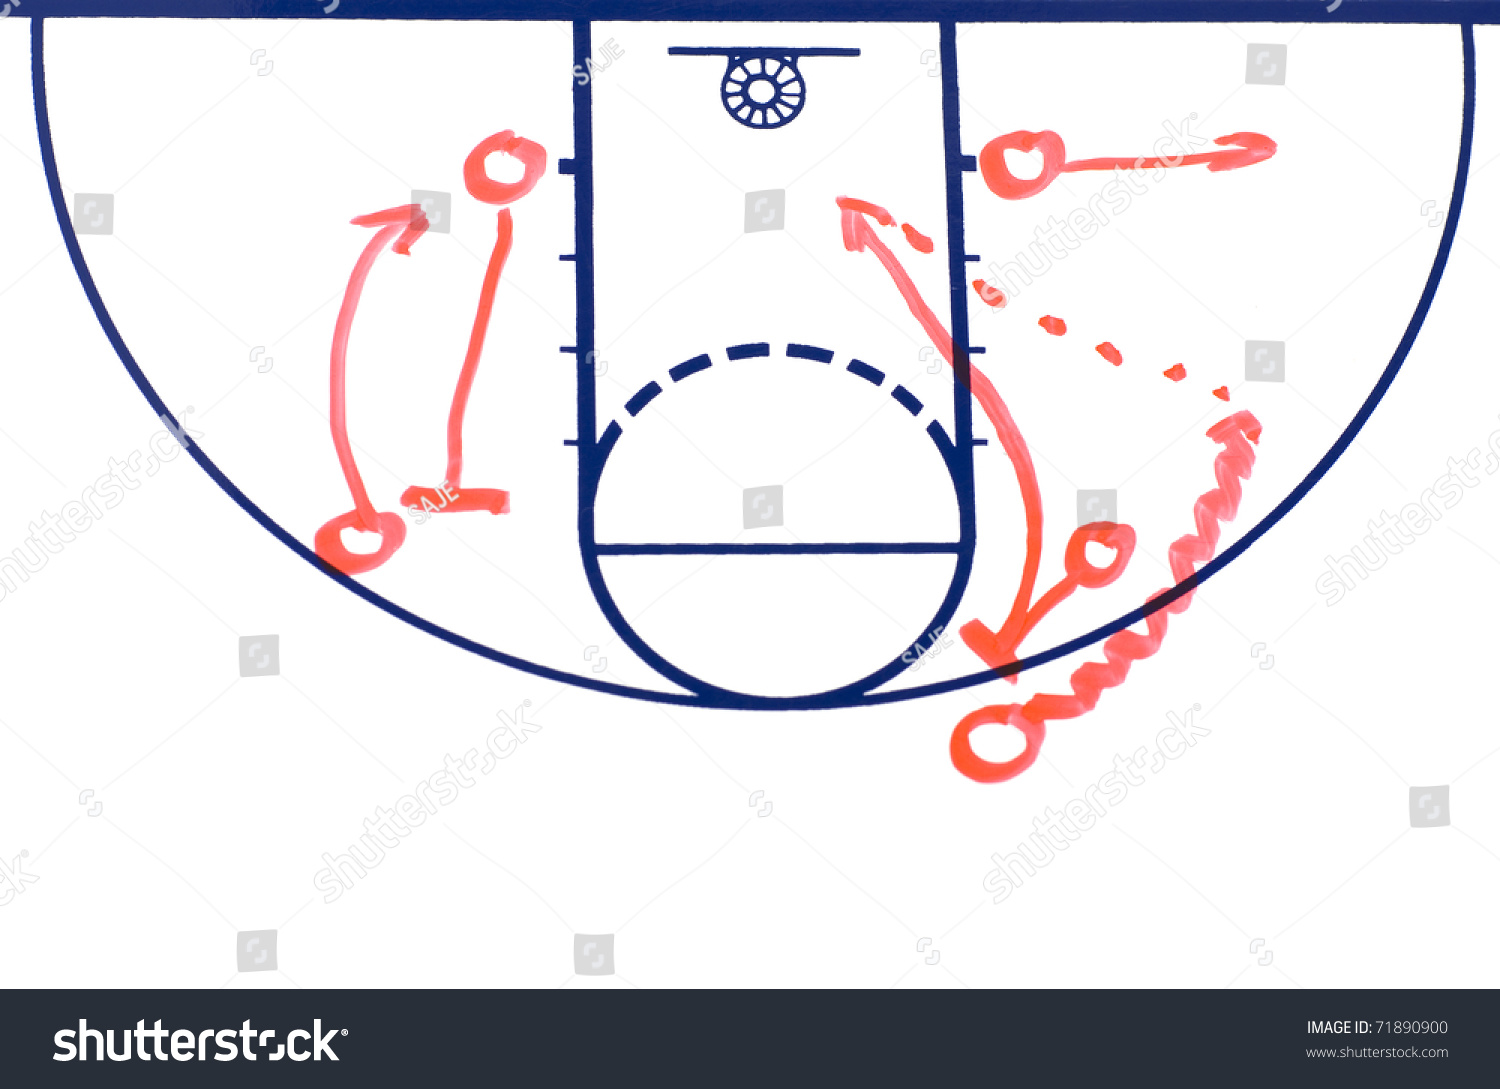 basketball background diagram on a white board showing a pick and roll play stock photo 71890900